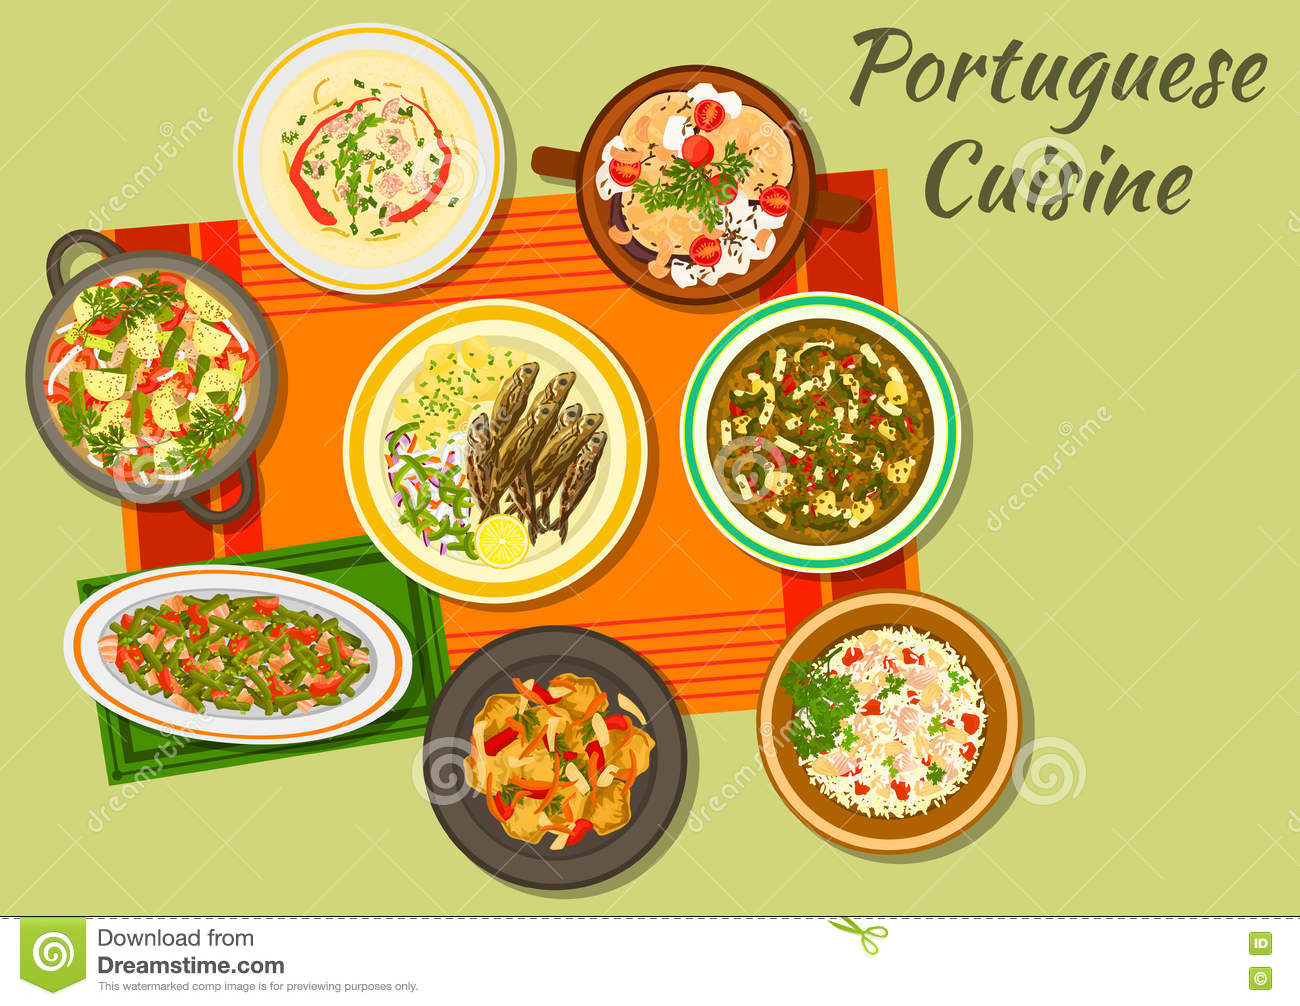 Portuguese cuisine icon for food design stock vector for Cuisine design portugal